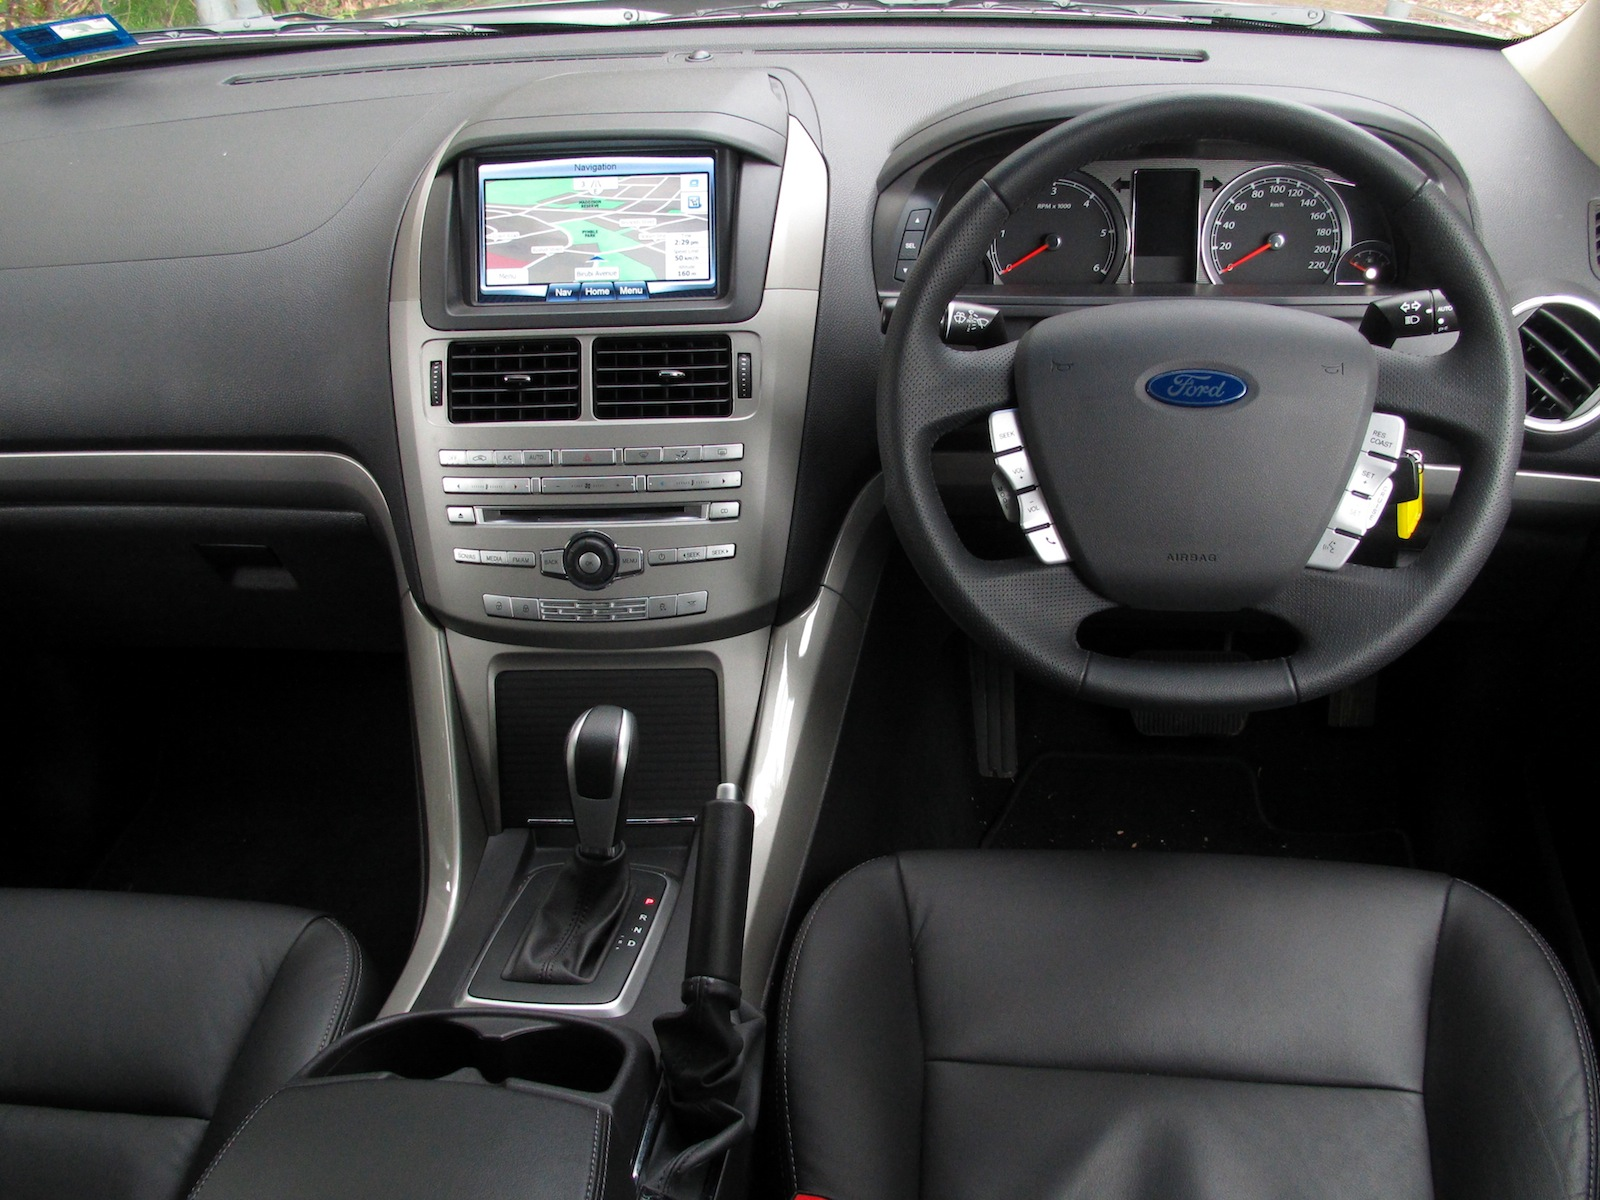 Interior: Ford Territory Review - Photos